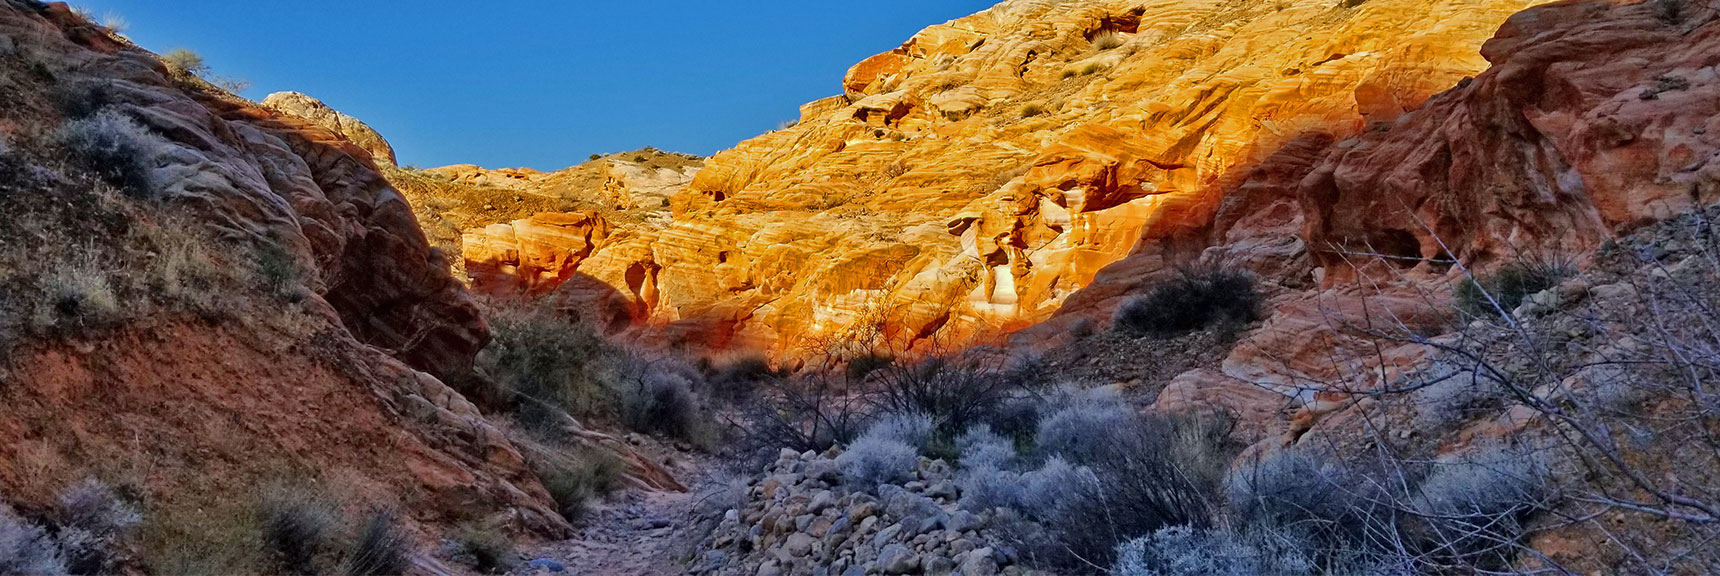 Descending Through the Northern Canyon Wash on Prospect Trail in Valley of Fire State Park, Nevada